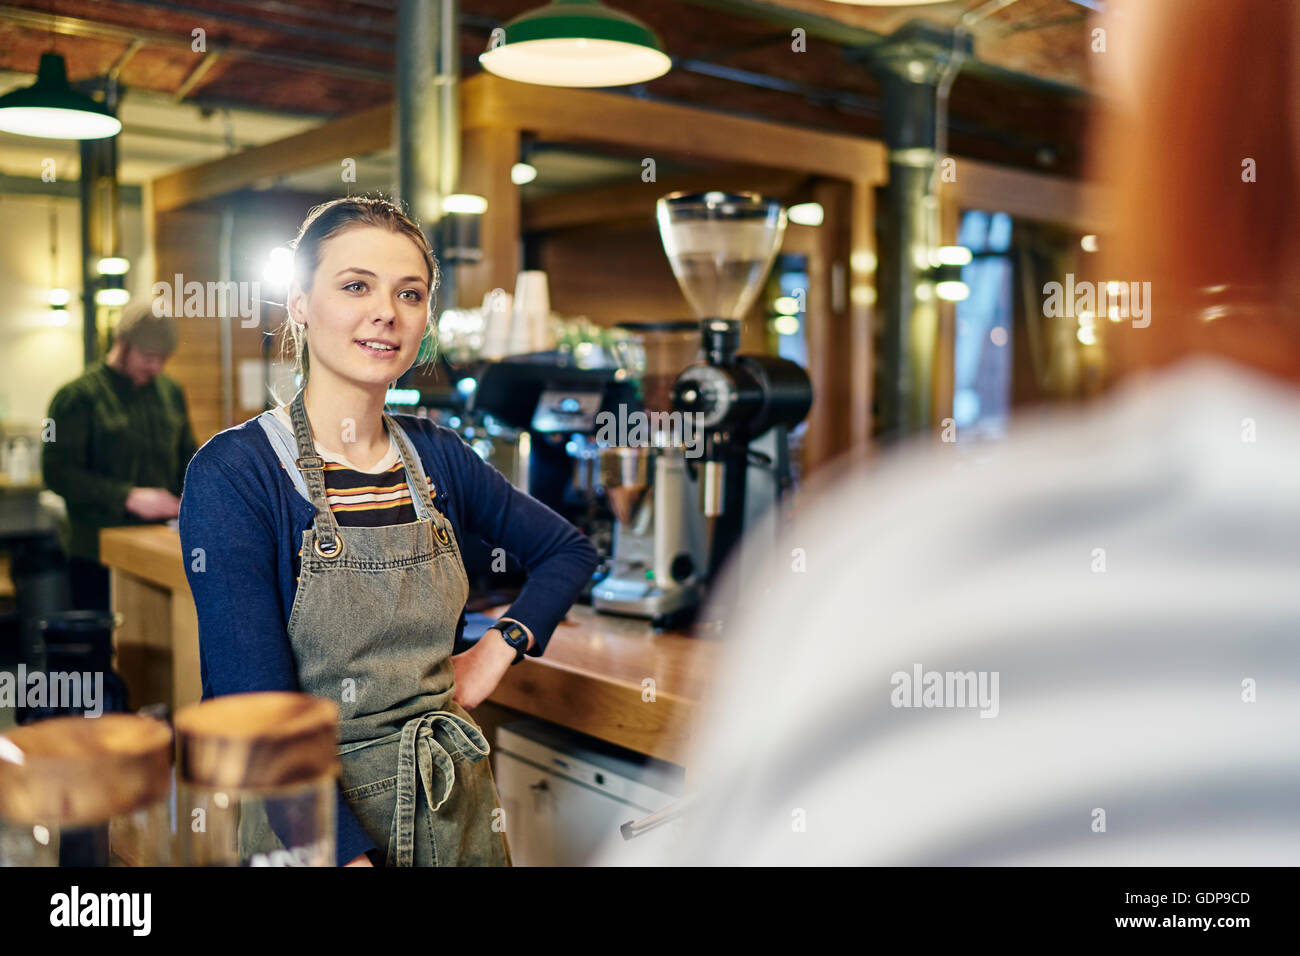 Female barista serving customer in coffee shop - Stock Image